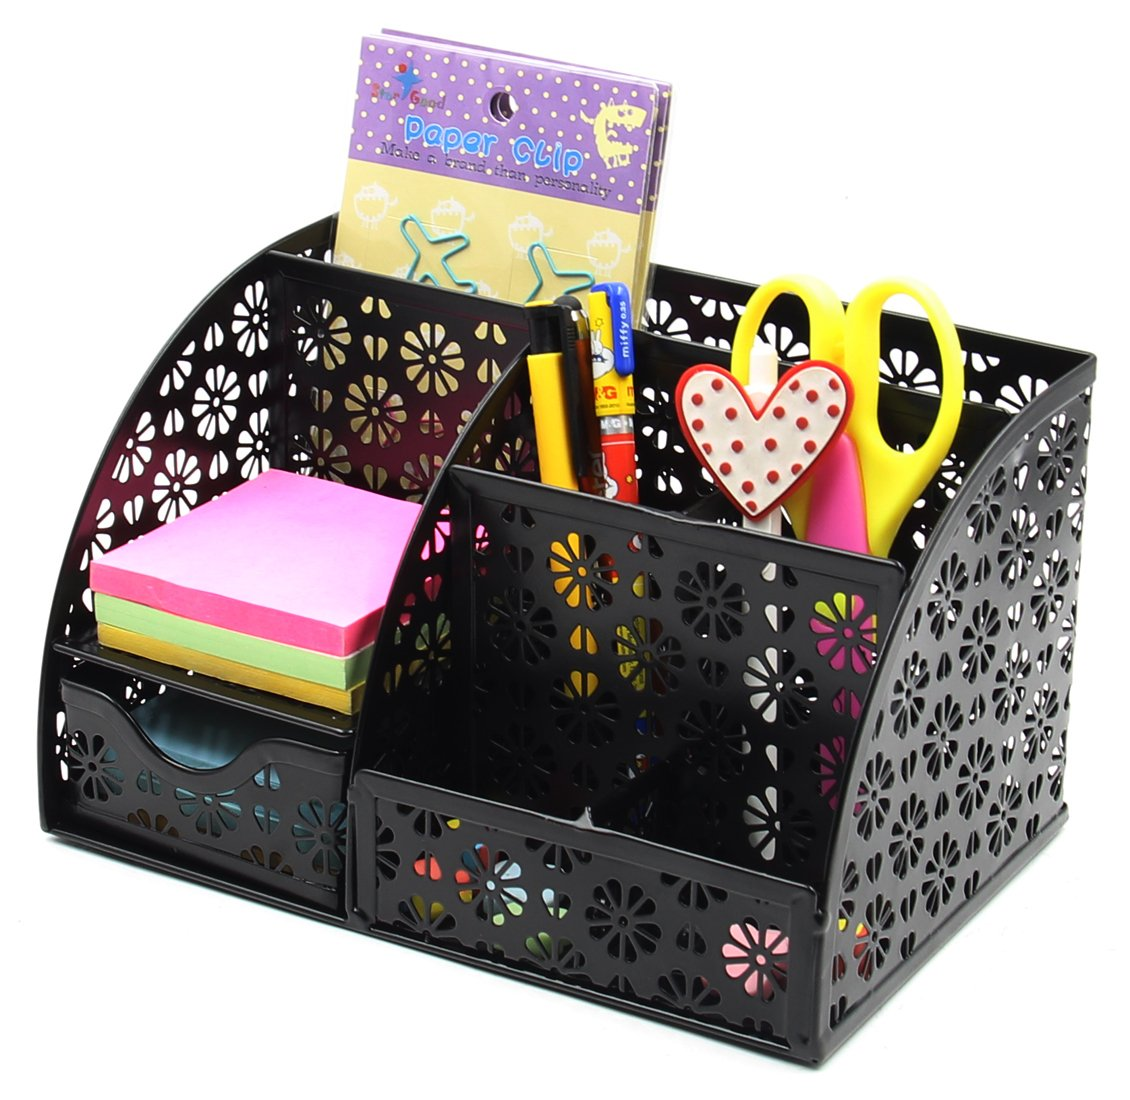 EasyPAG Office Desk Organizer with Drawer Solid Metal Snow Shaped Pattern Design,Black by EasyPag (Image #4)